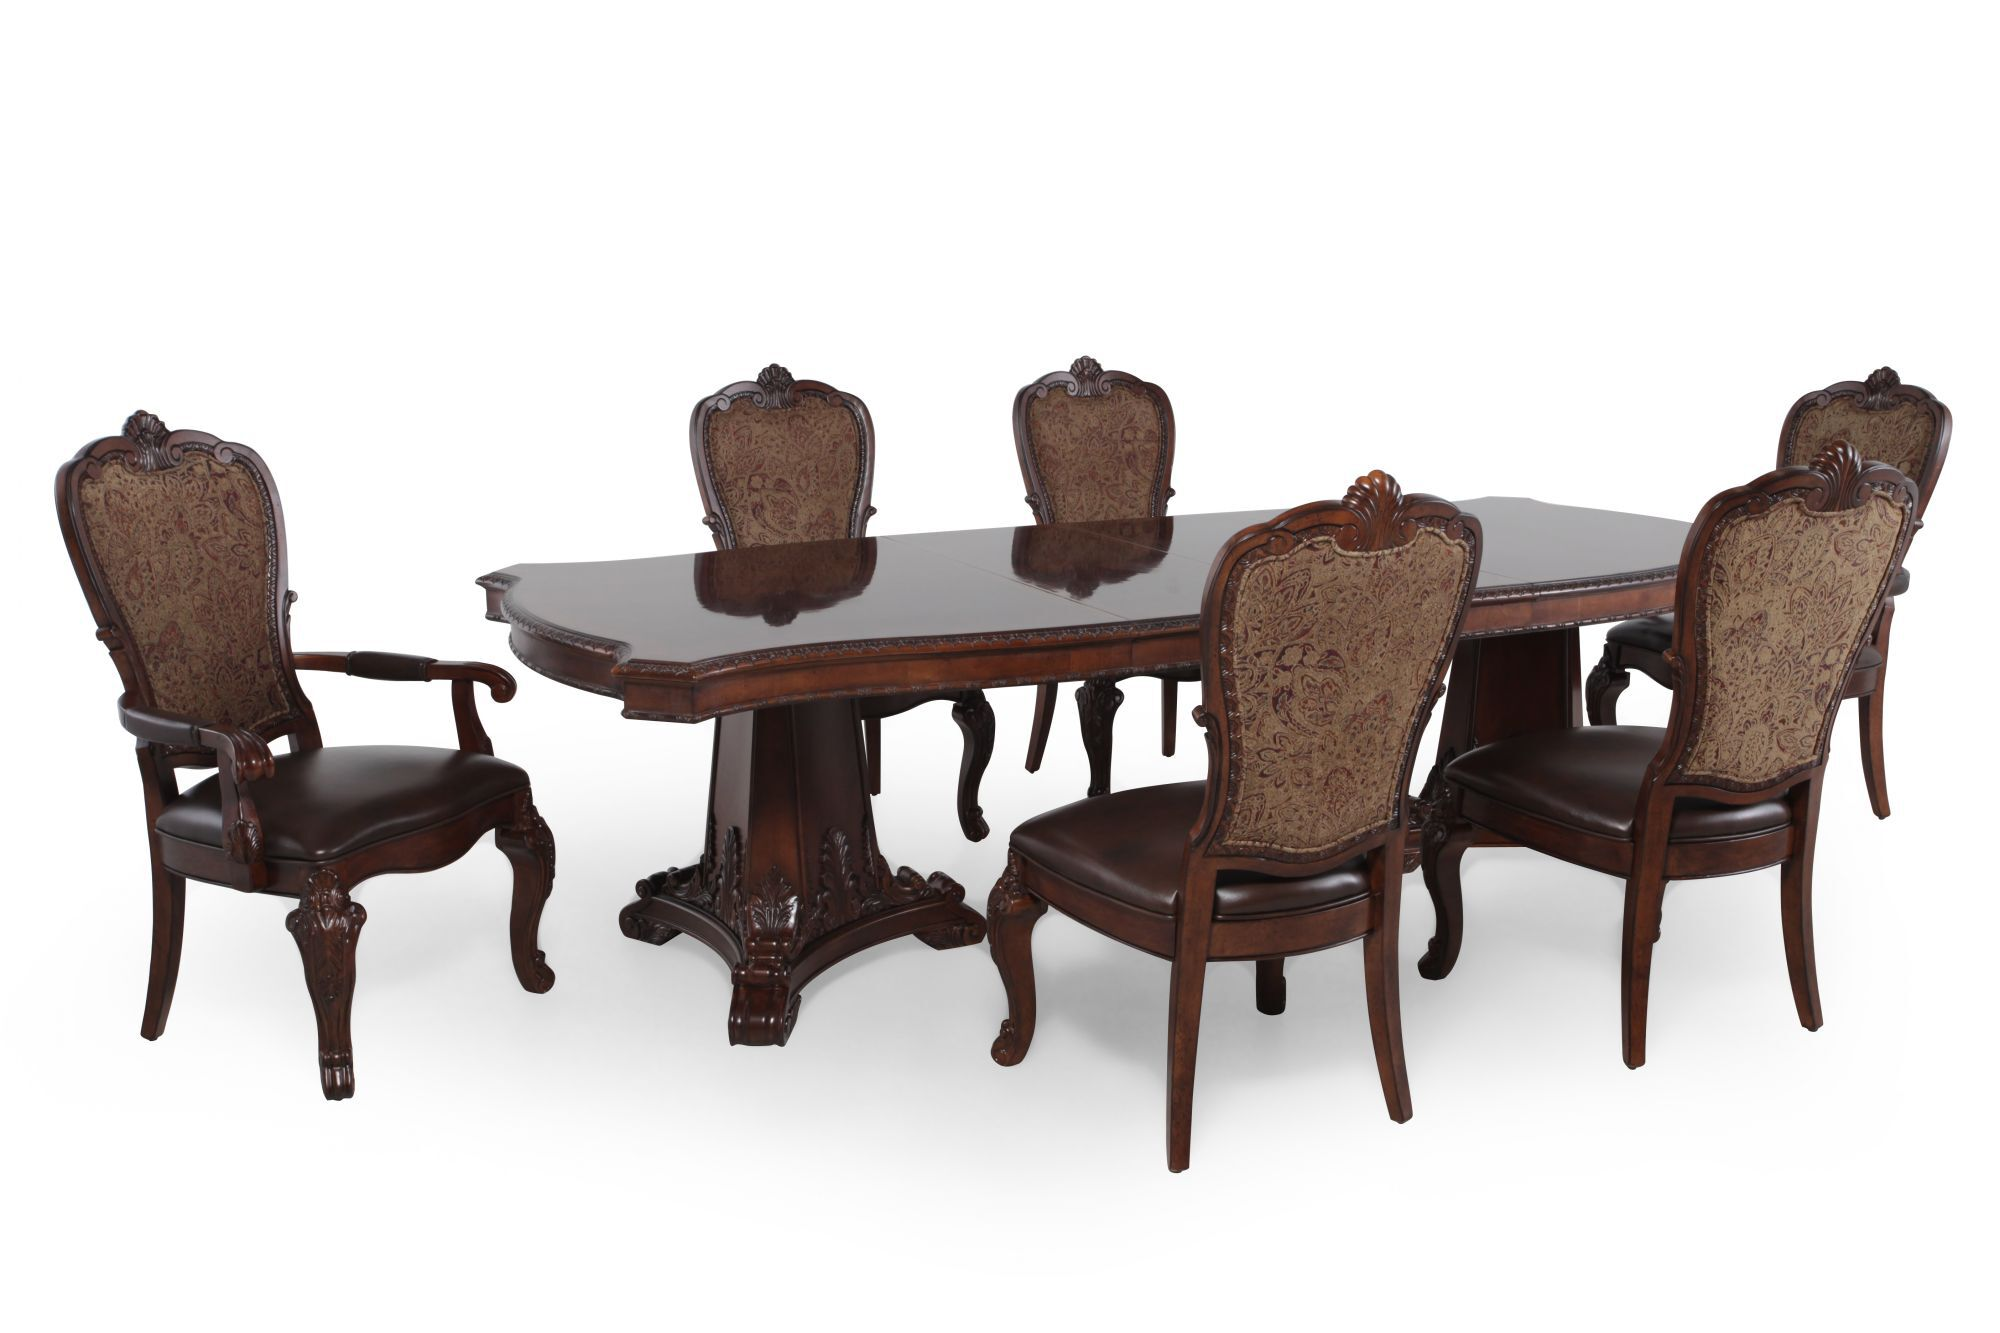 A.R.T. Furniture Seven Piece Old World Pedestal Table Dining Set Part 19